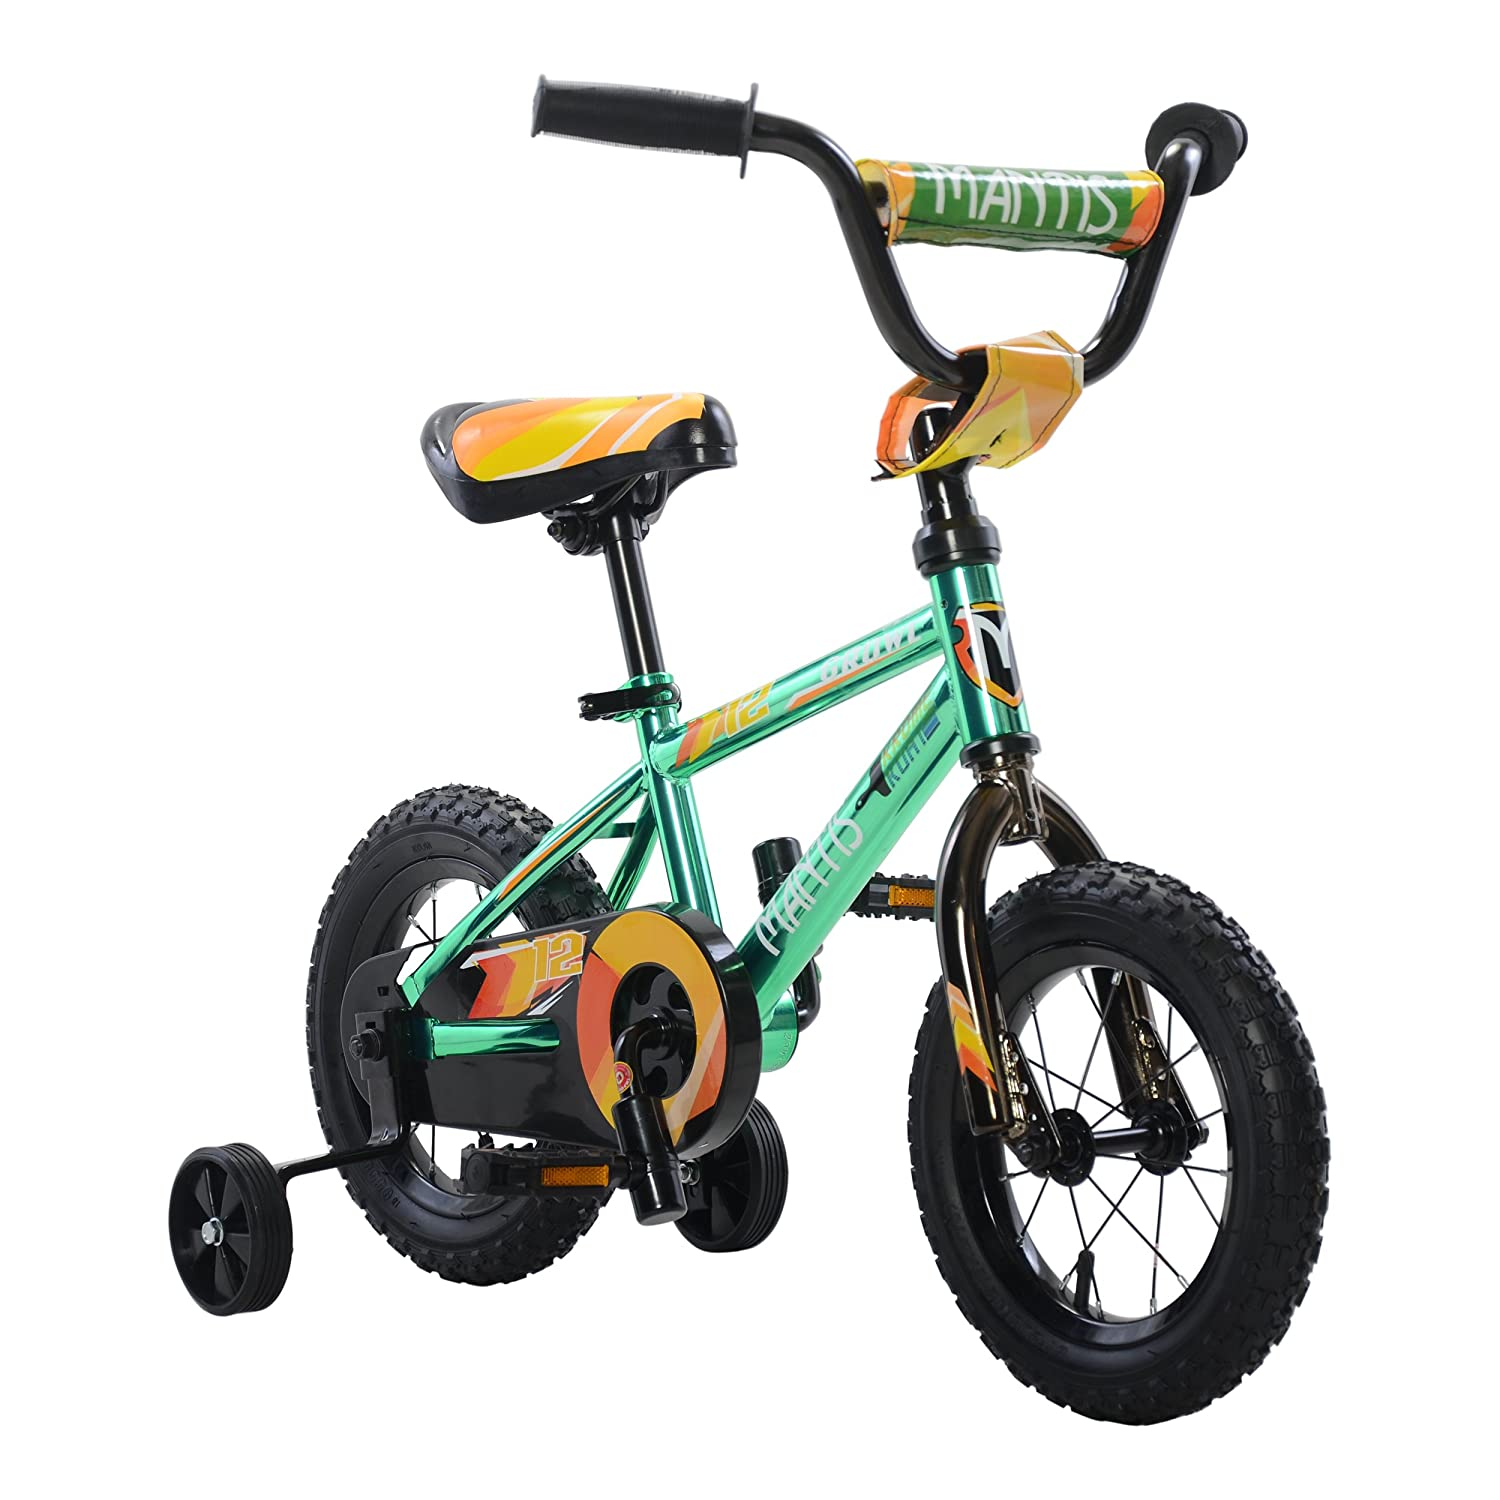 Mantis Ready2Roll Kids Bicycle in 12 16 or 20 inch Sizes in a Variety of Colors